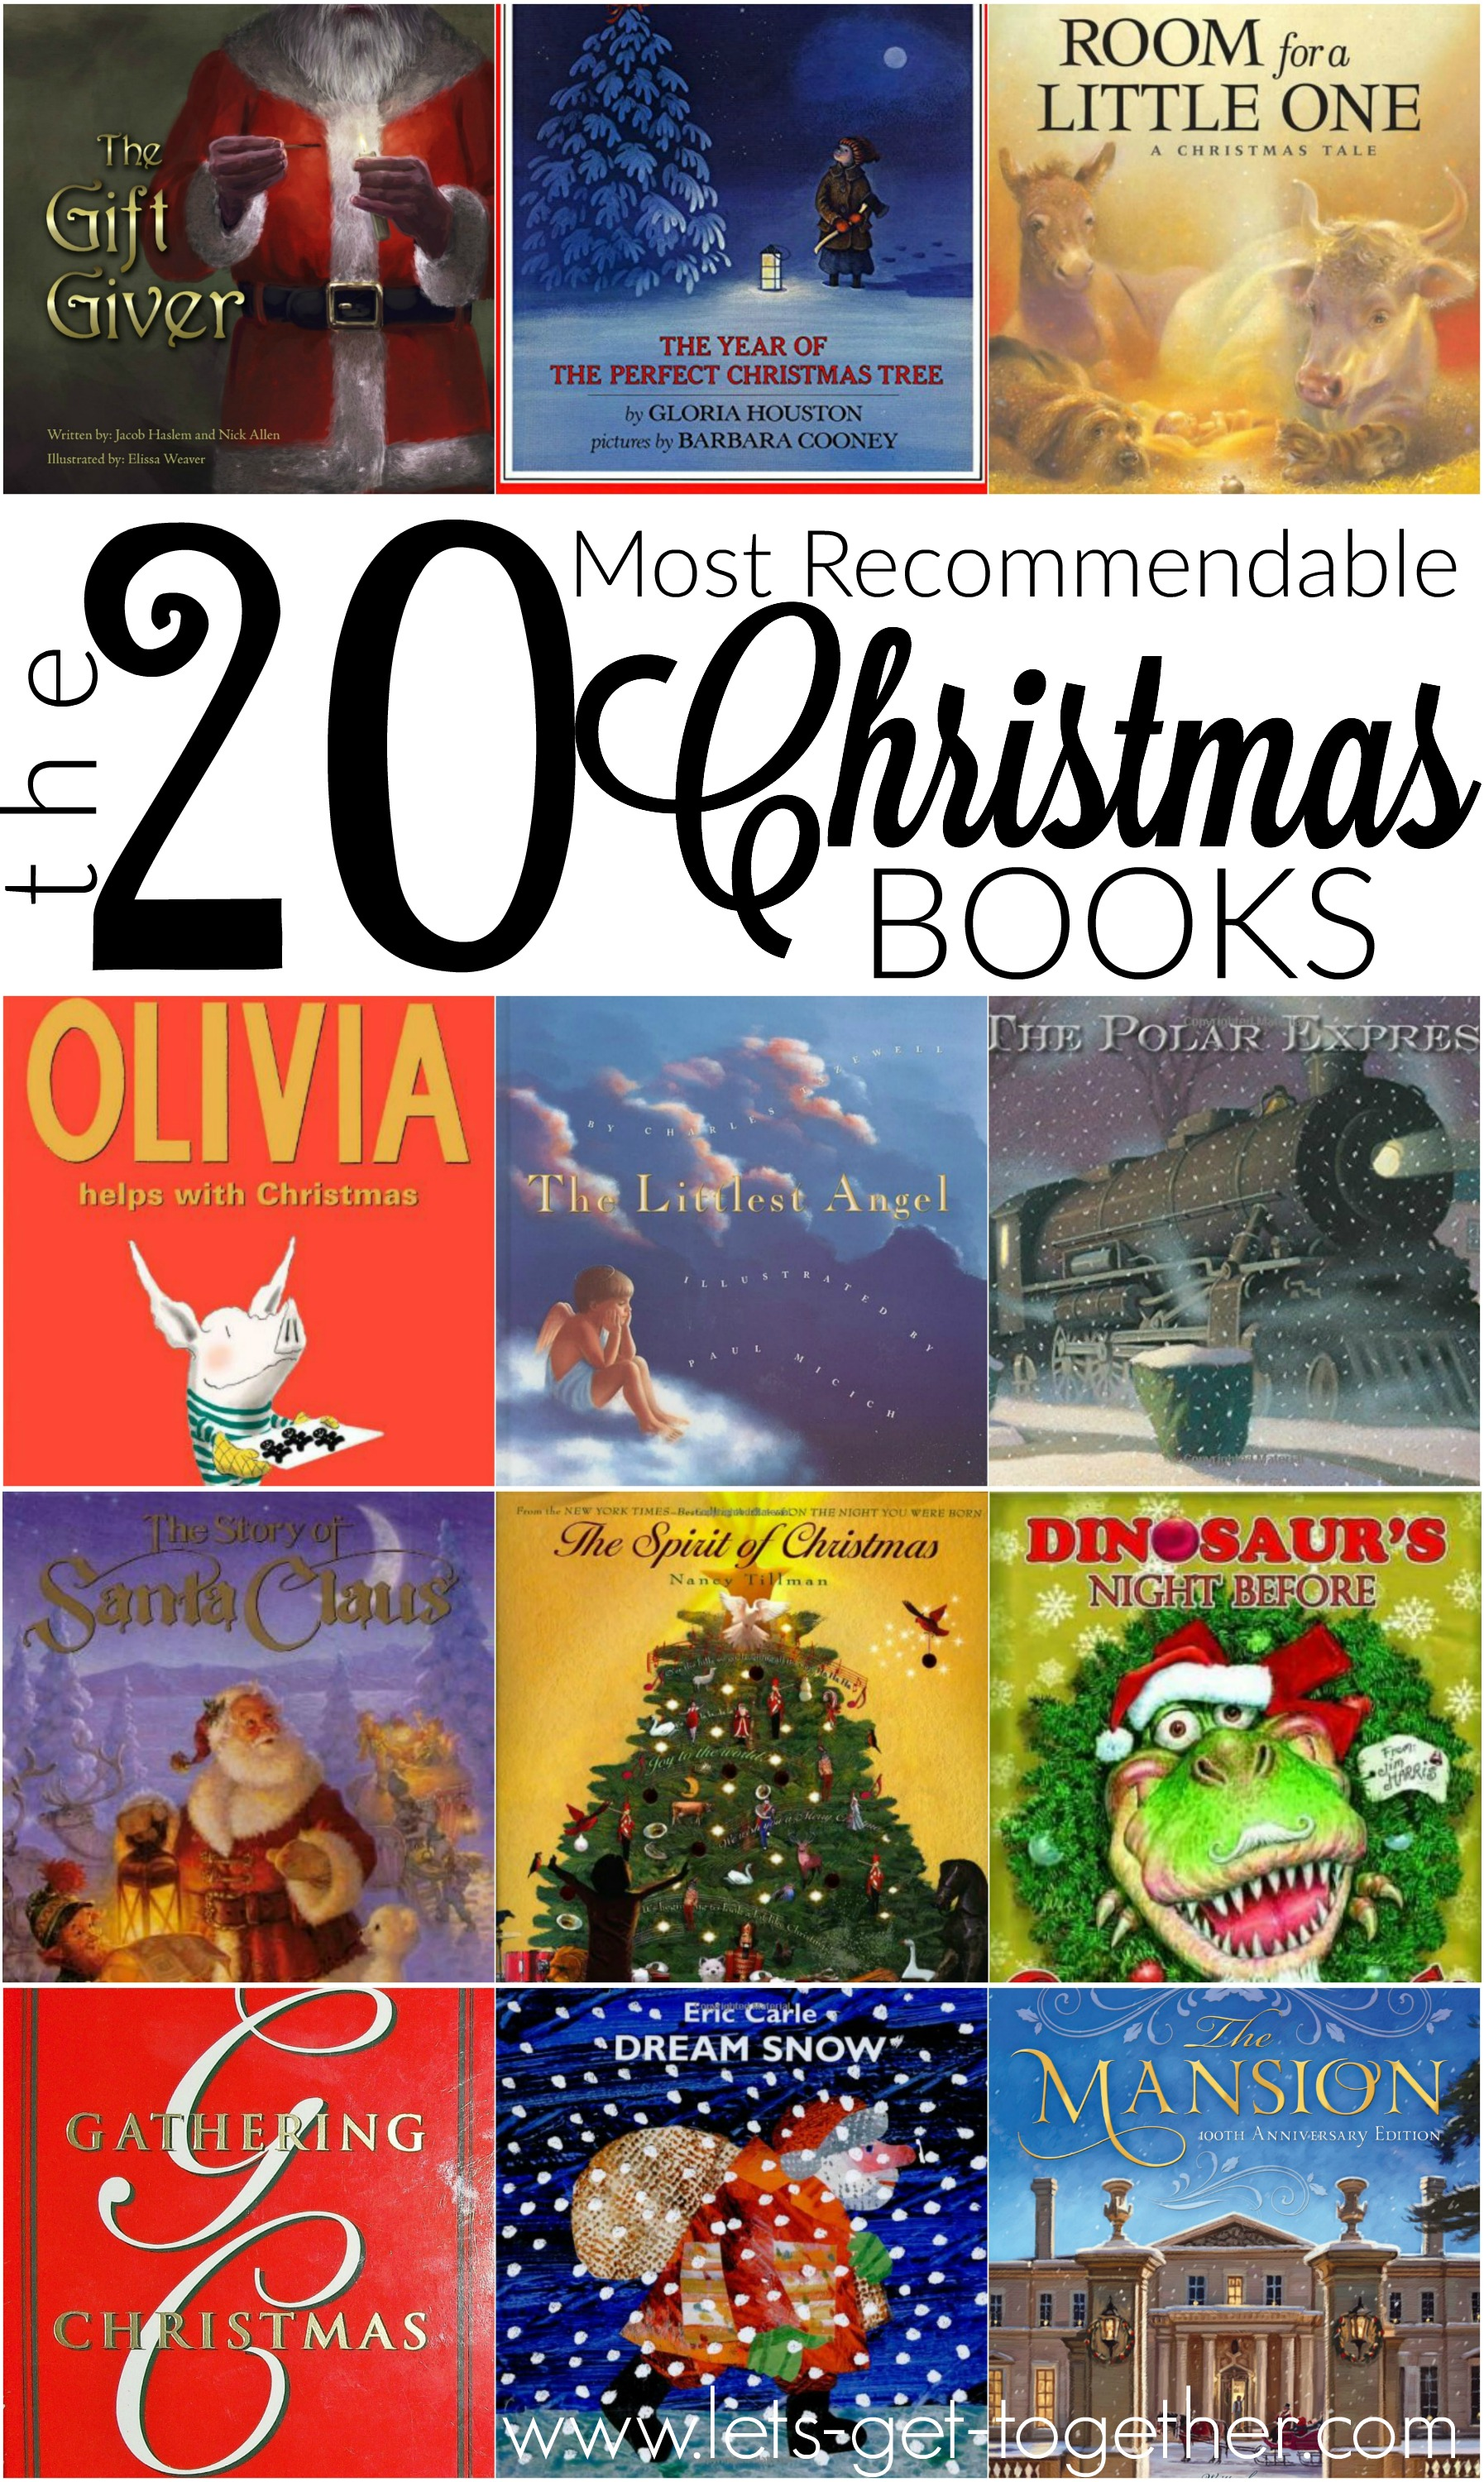 The Twenty Most Recommendable Christmas Books